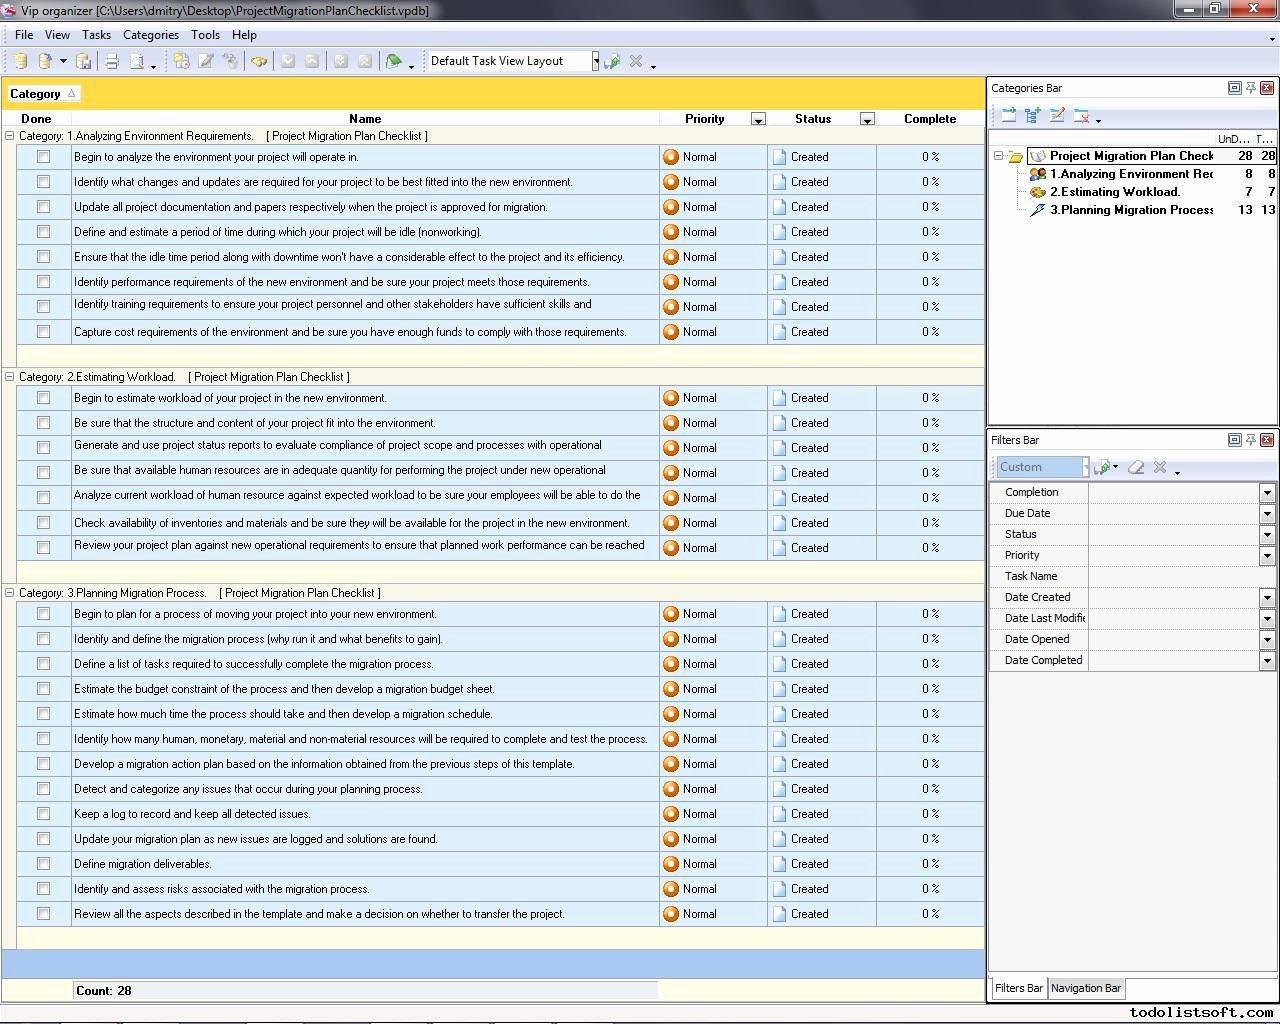 Software Project Plan Template Best Of Project Migration Plan Checklist to Do List organizer